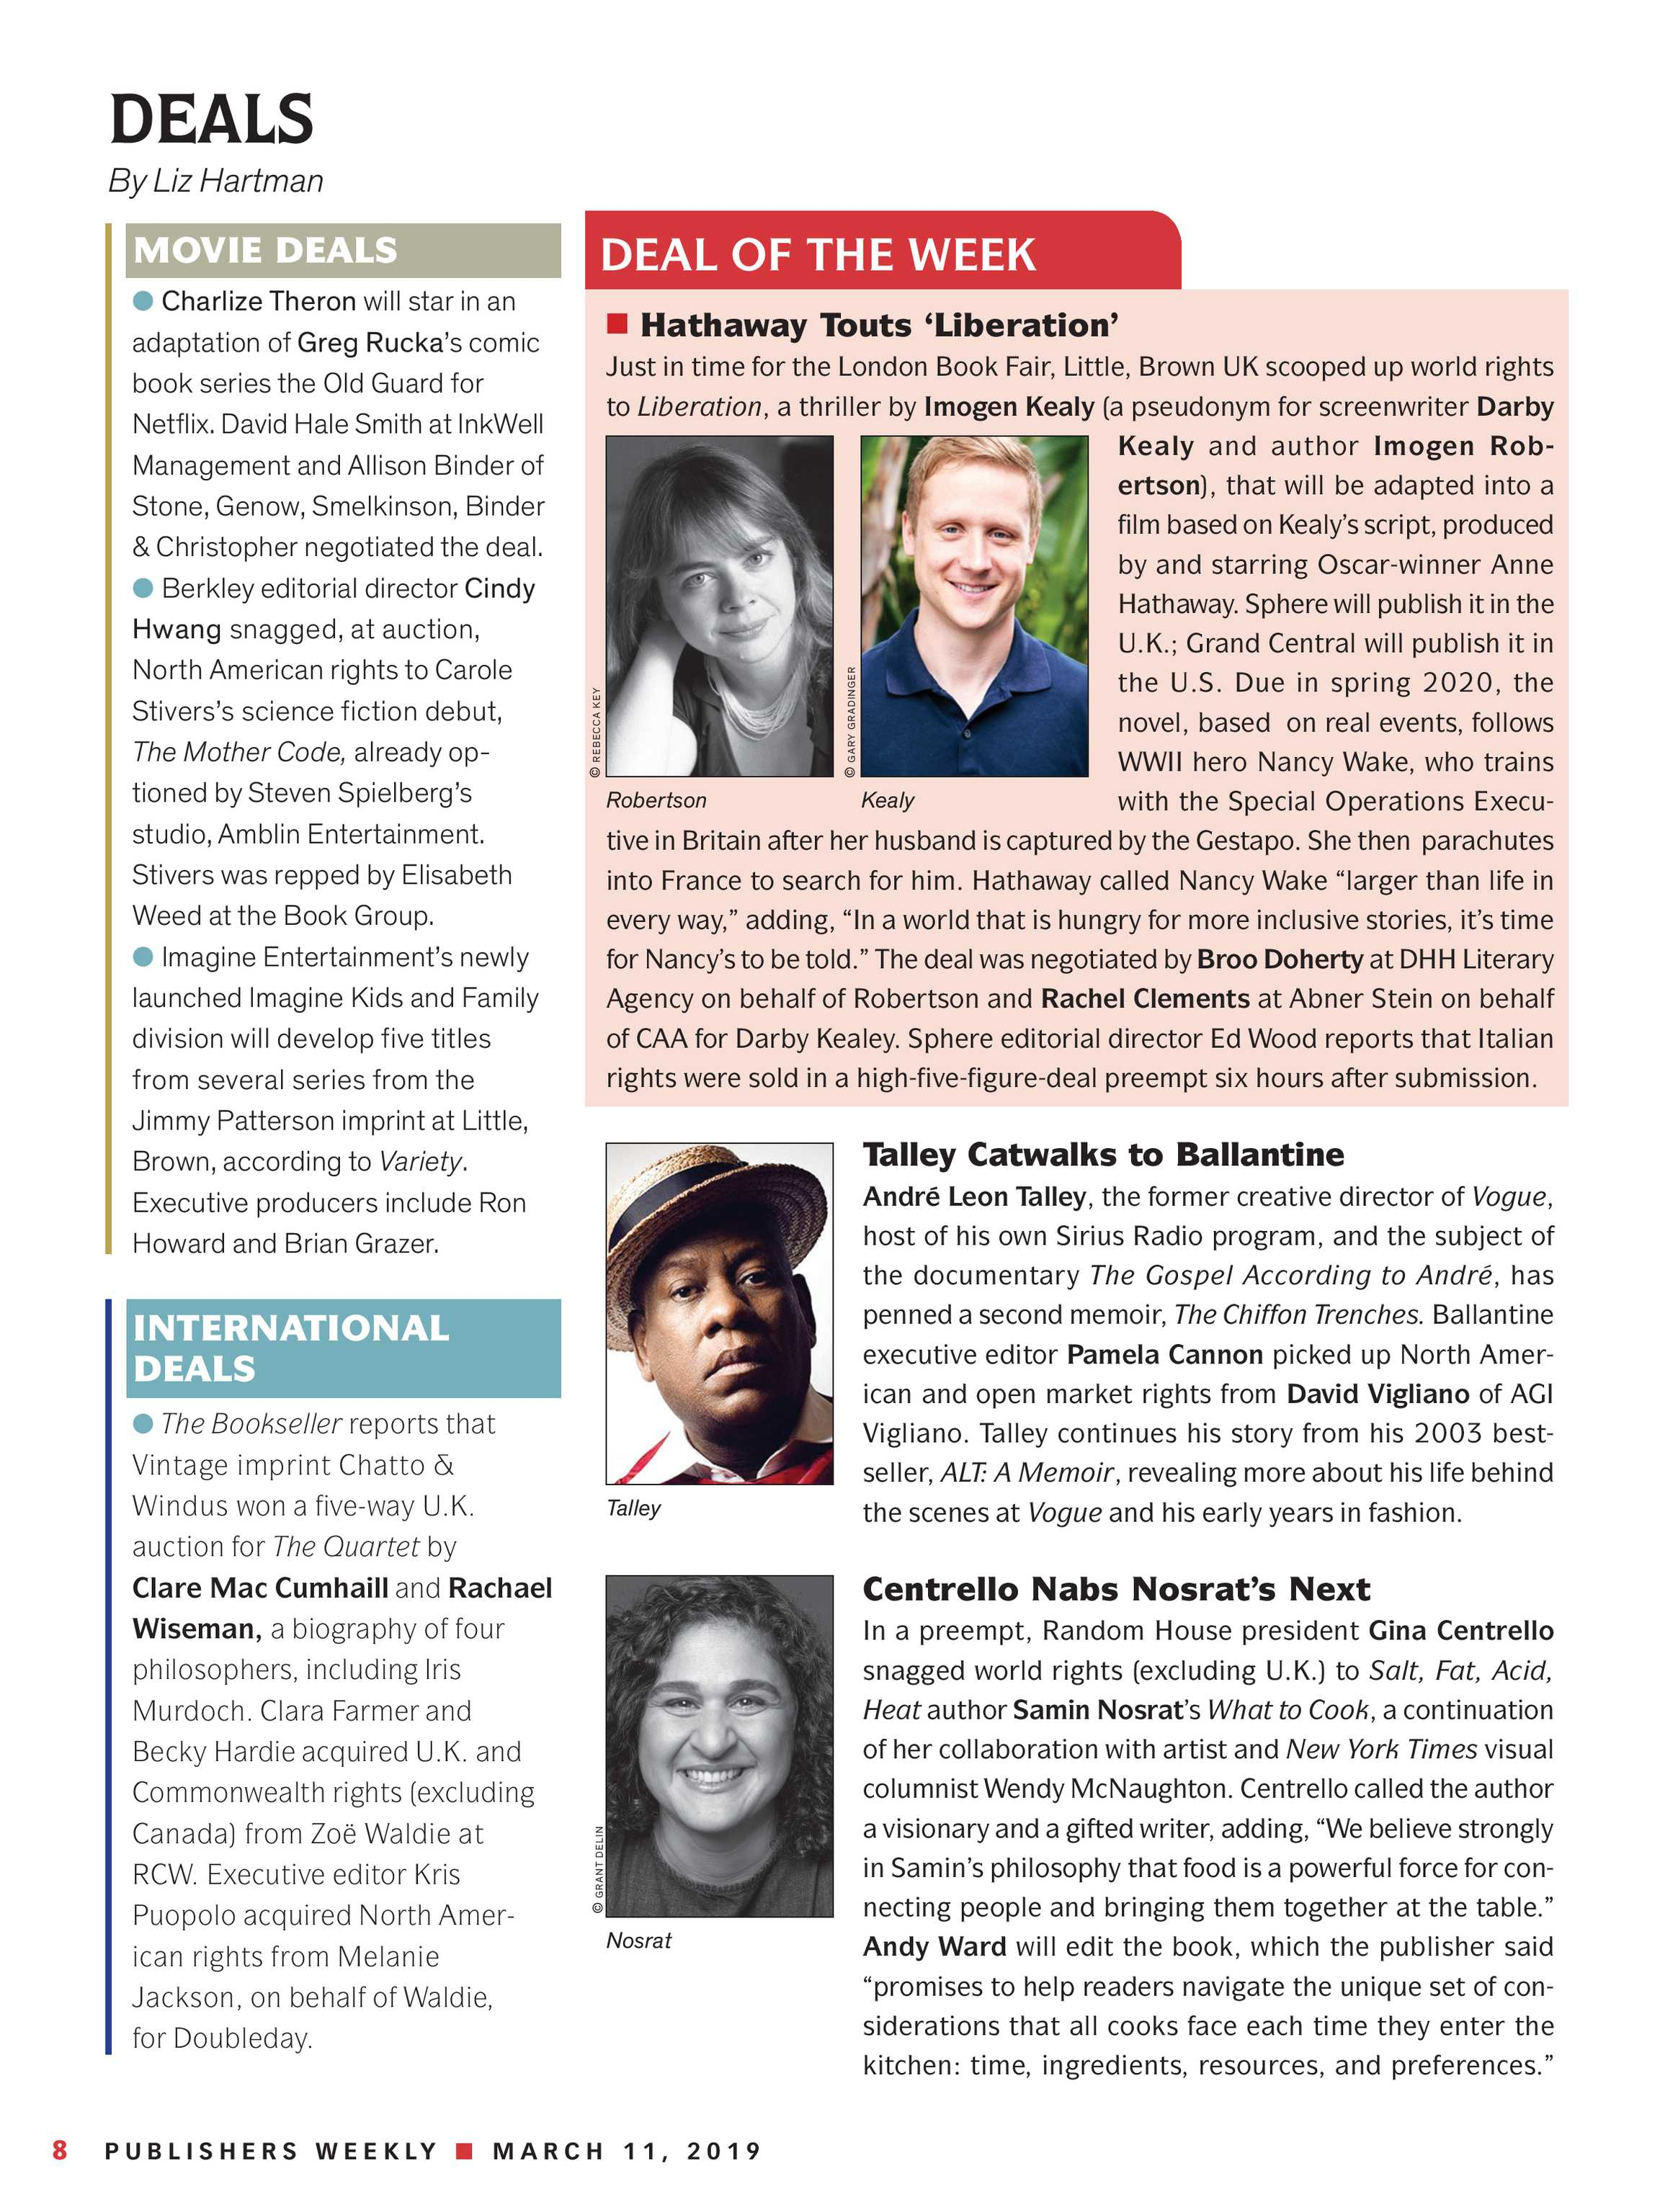 Publishers Weekly - March 11, 2019 - page 10